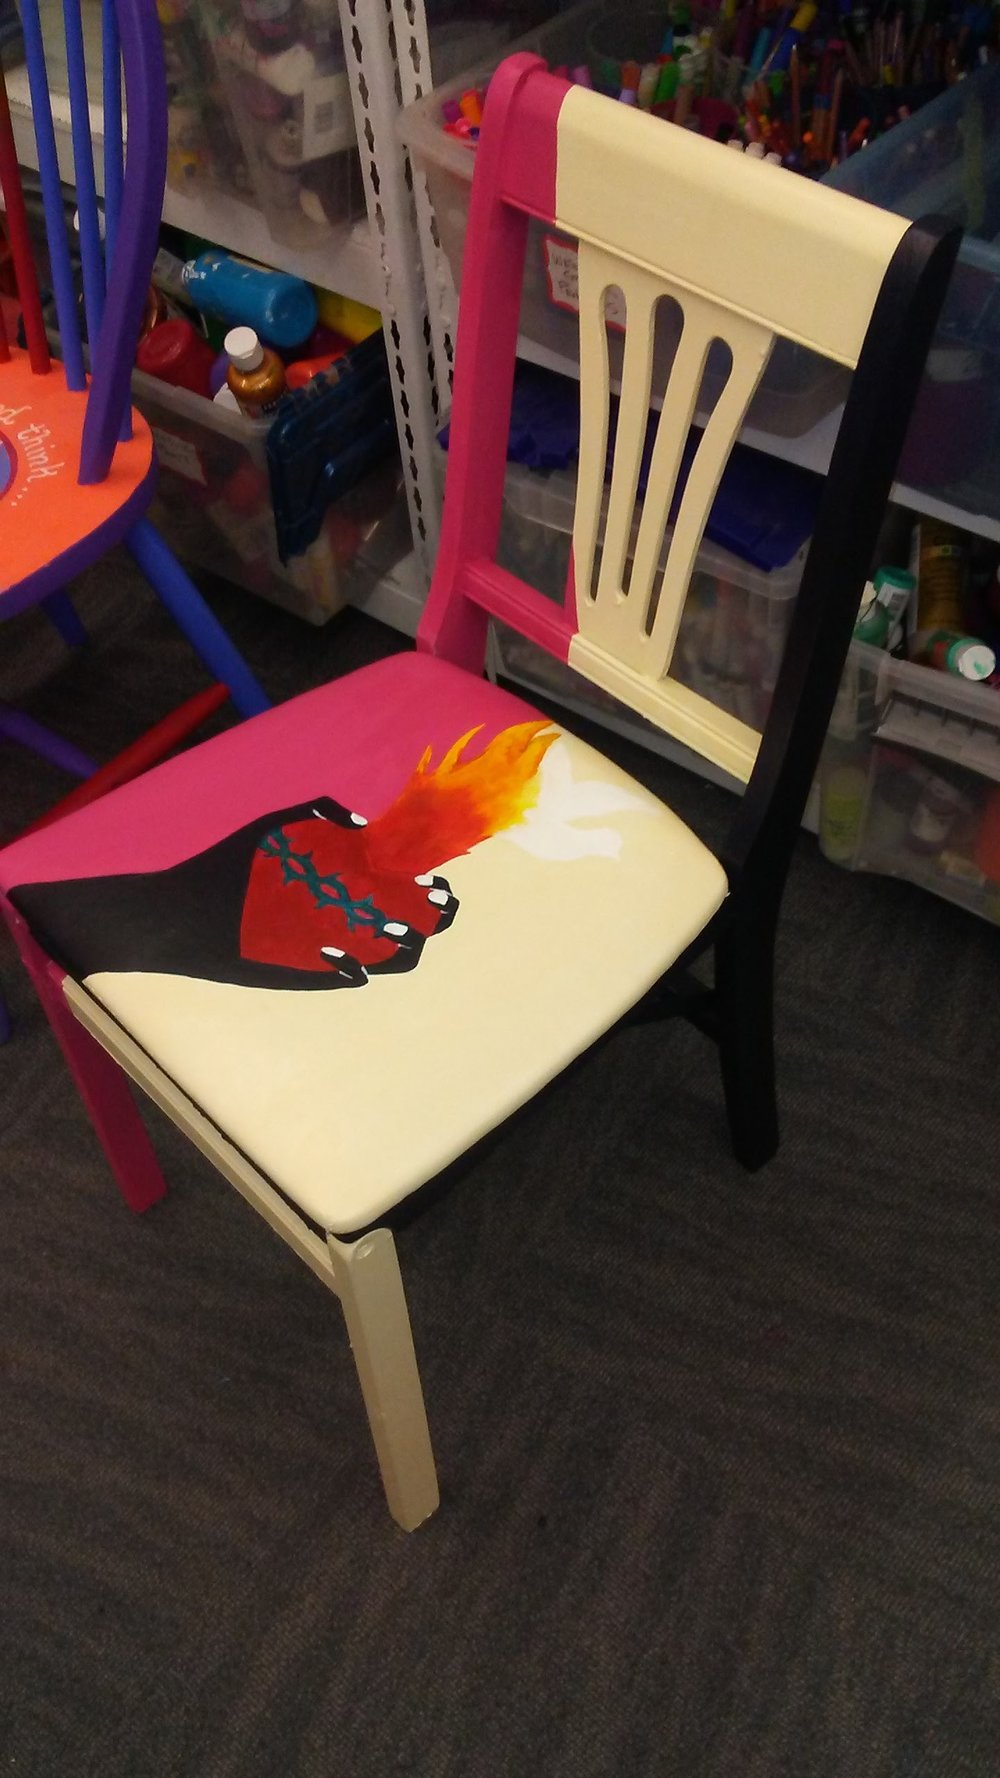 Chair I painted for a theater event about a protest for equality and justice.